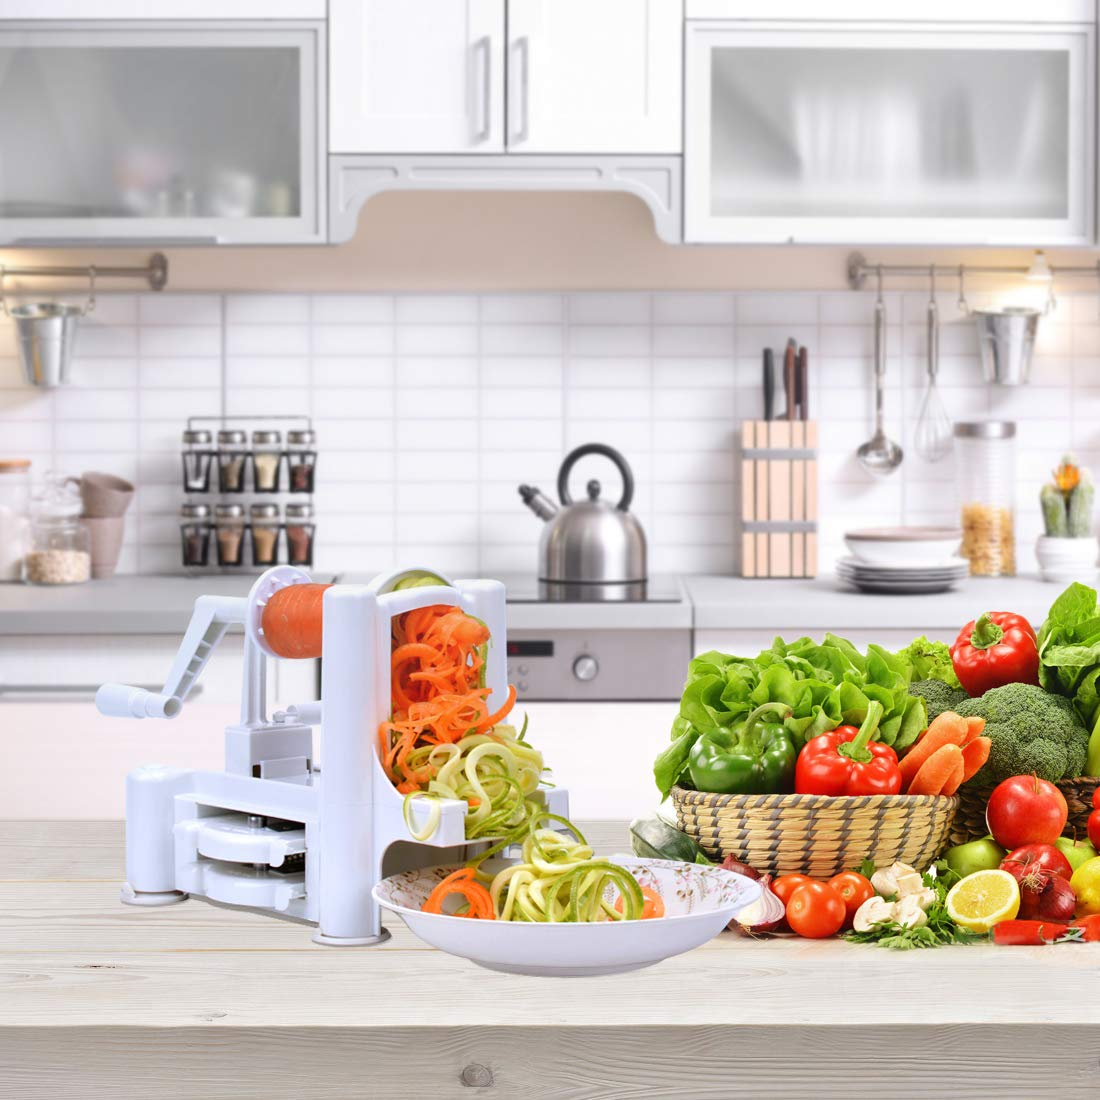 Fruits and Veggies Slicer for Low Carb Zucchini Spaghetti Maker Zoodle Flamen TRTAZ11A // Paleo//Gluten-Free Meals 5-Blade Vegetable Spiralizer